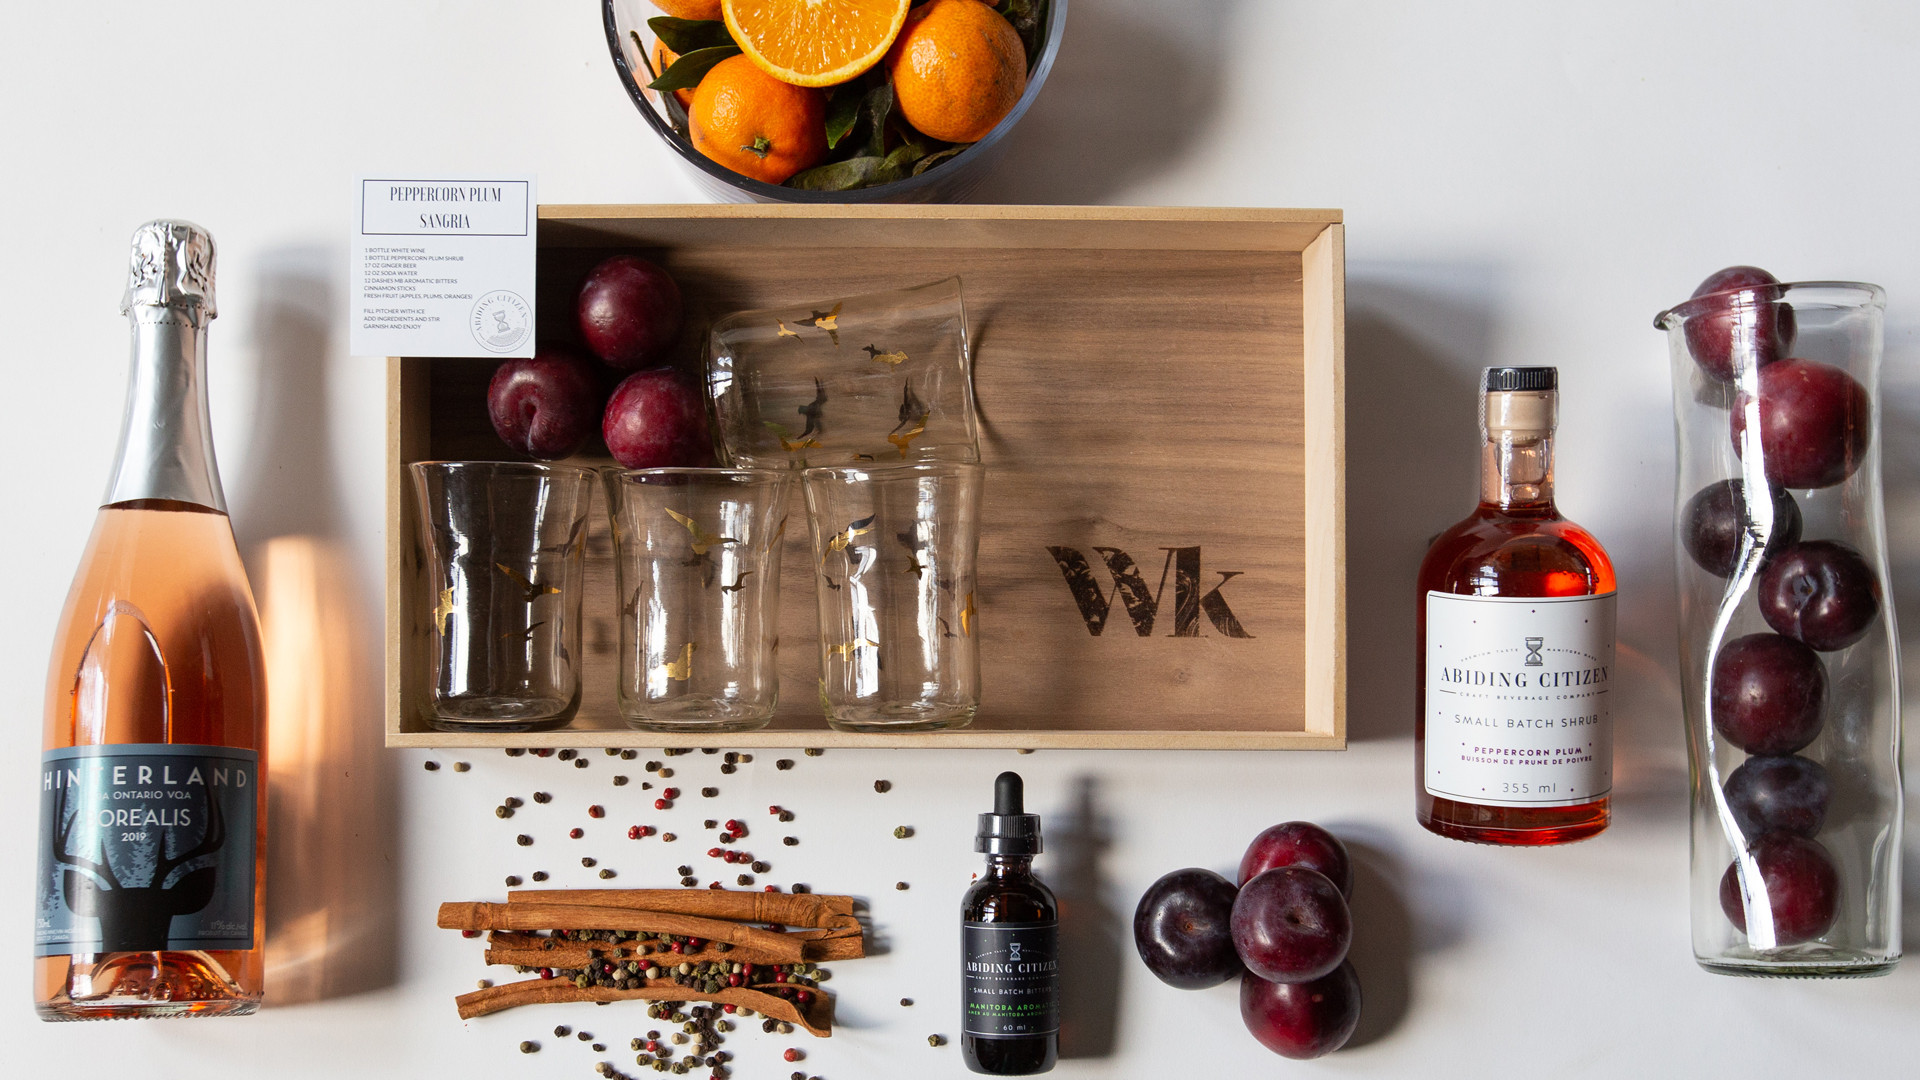 Wonderkind unique local gift sets made in Canada | A bespoke gift box with plum sangria